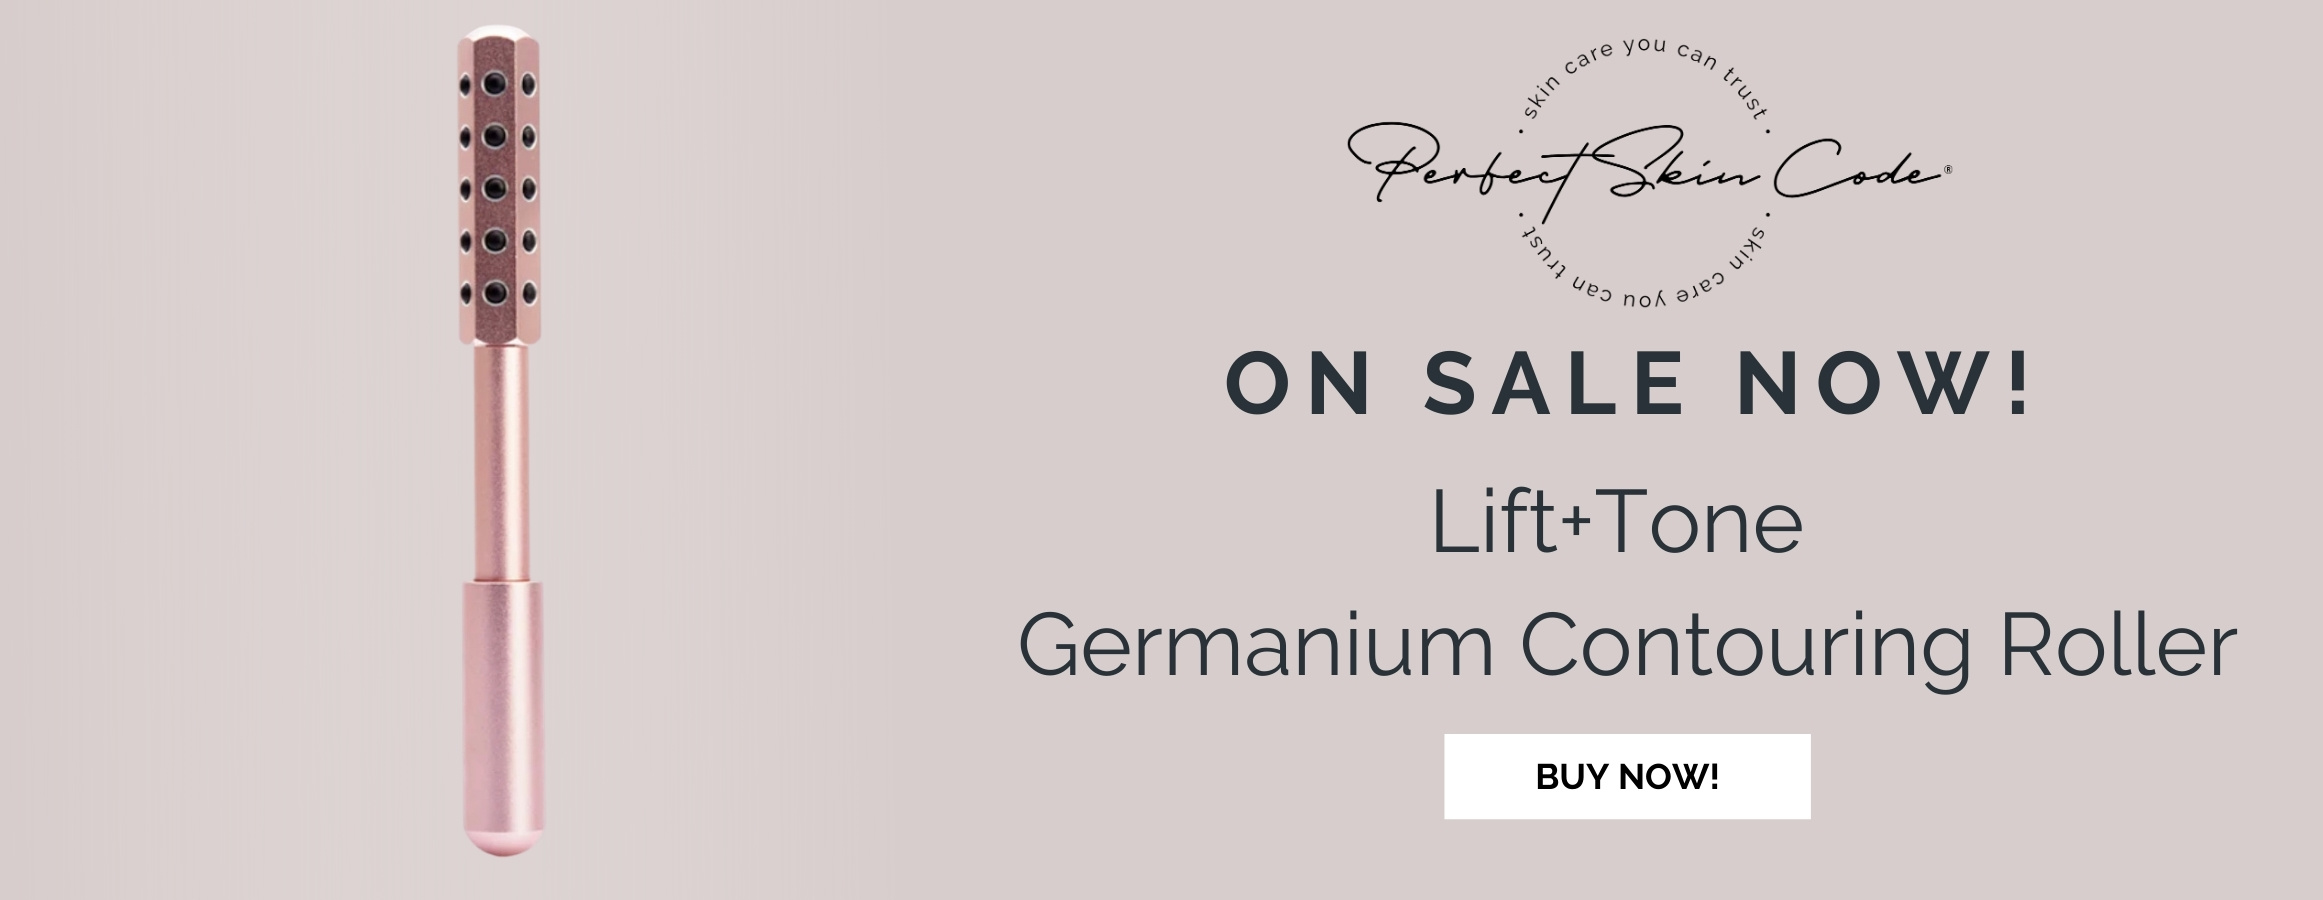 Lift + Tone Germanium Contouring Roller